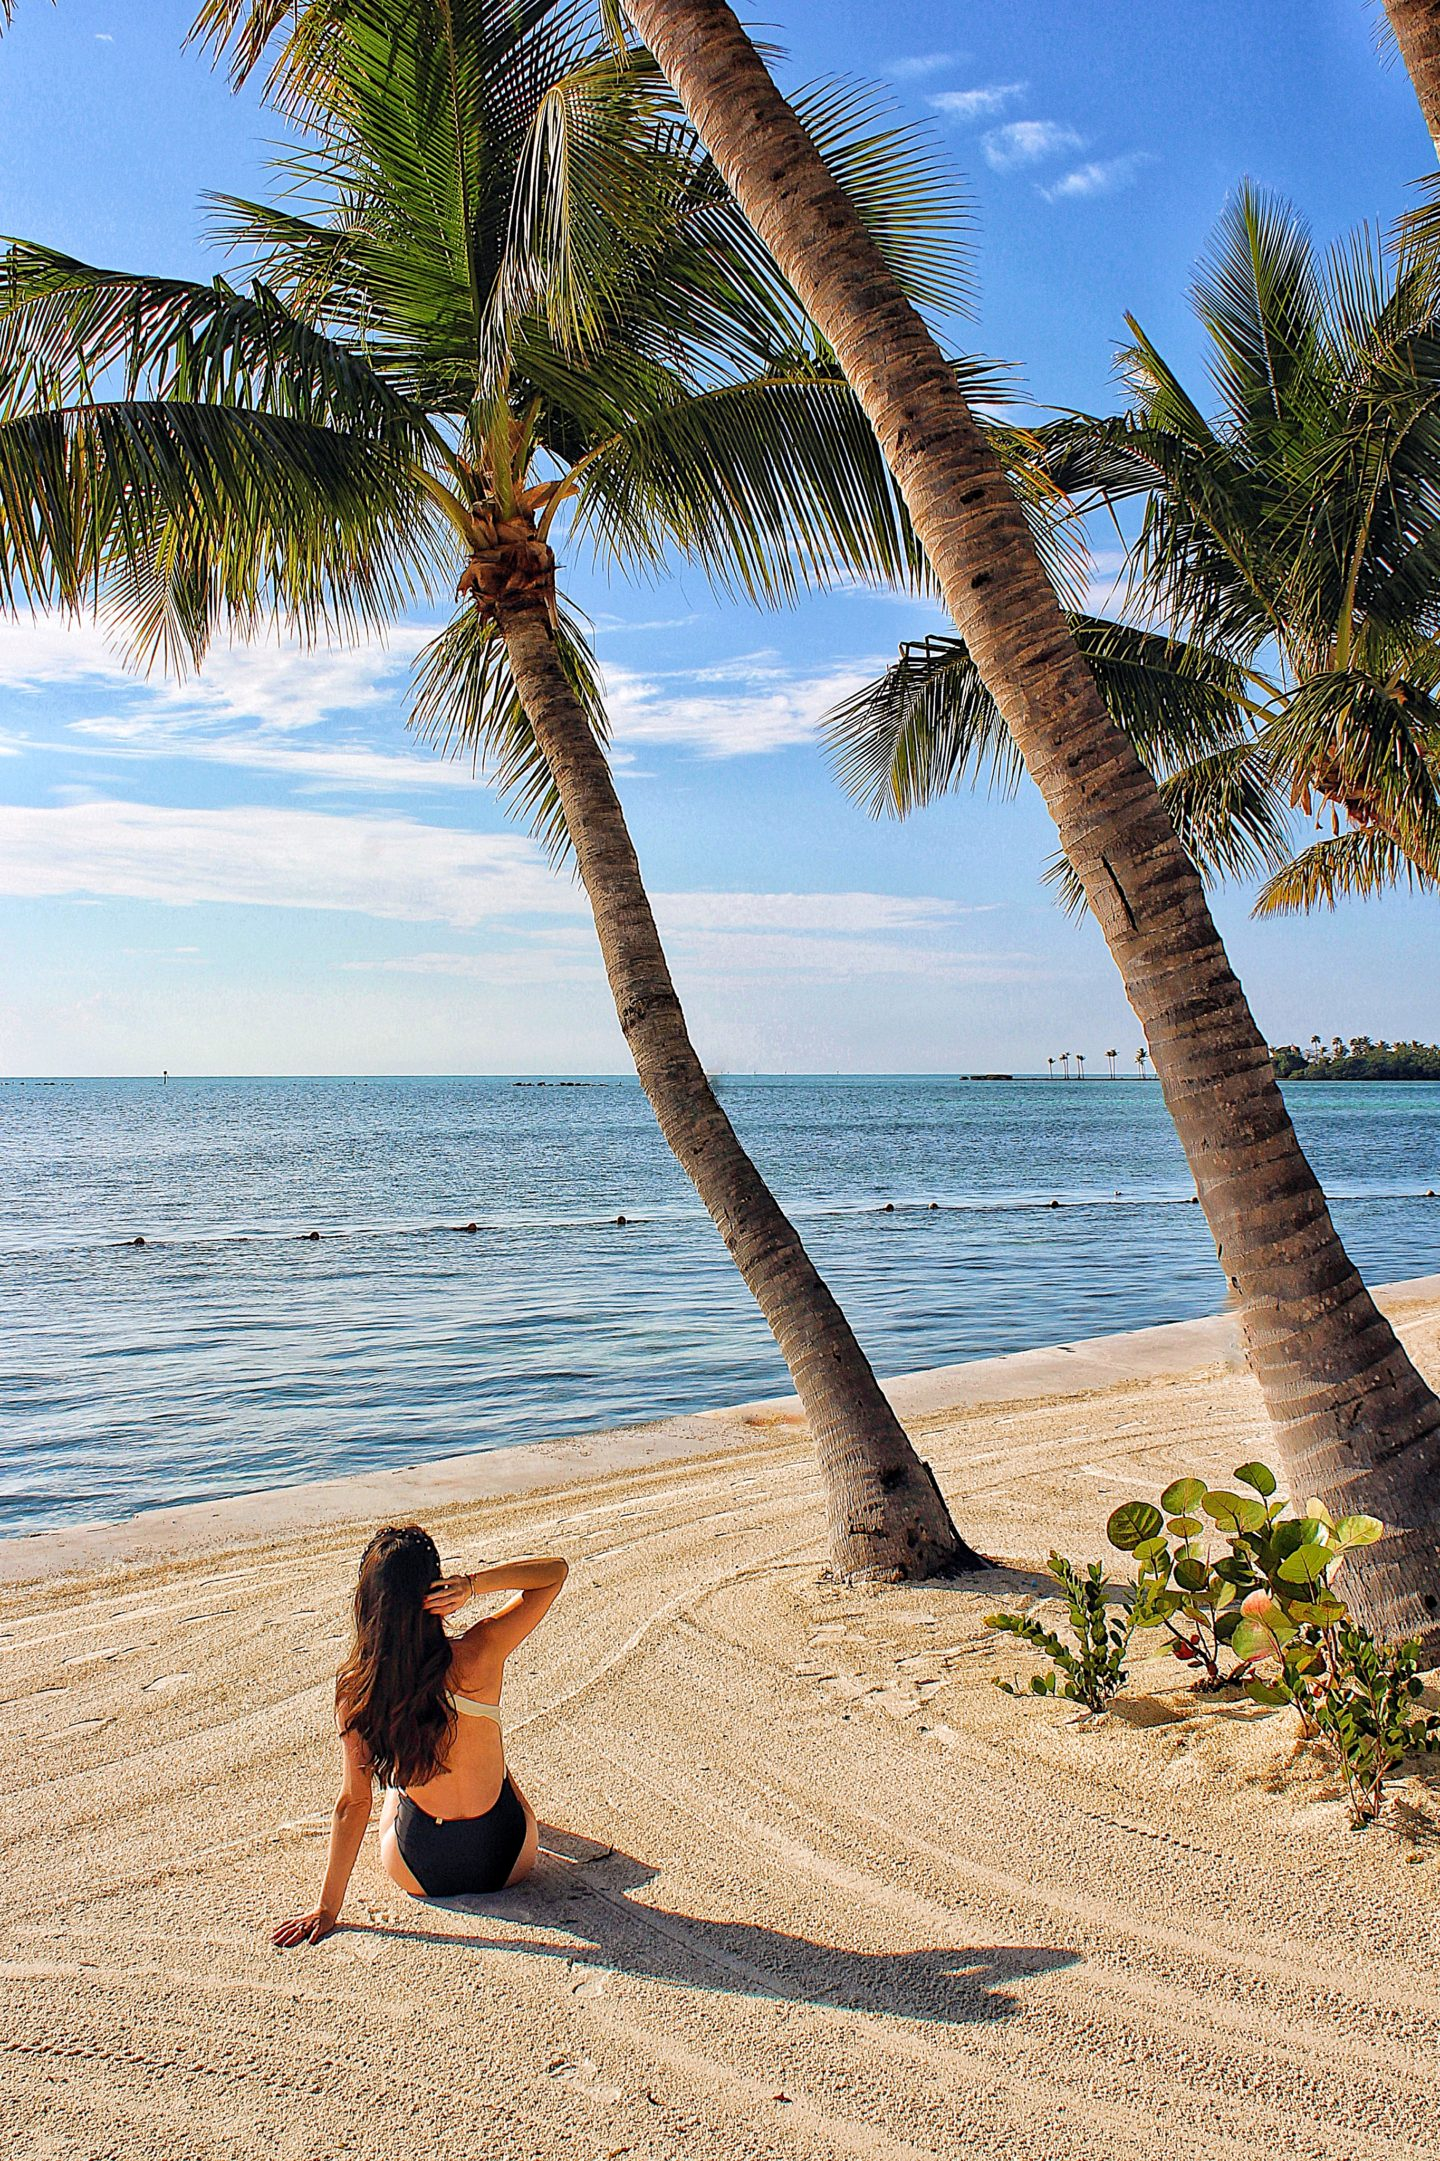 Escape-to-Amara-Cay-resort-Islamorada resort